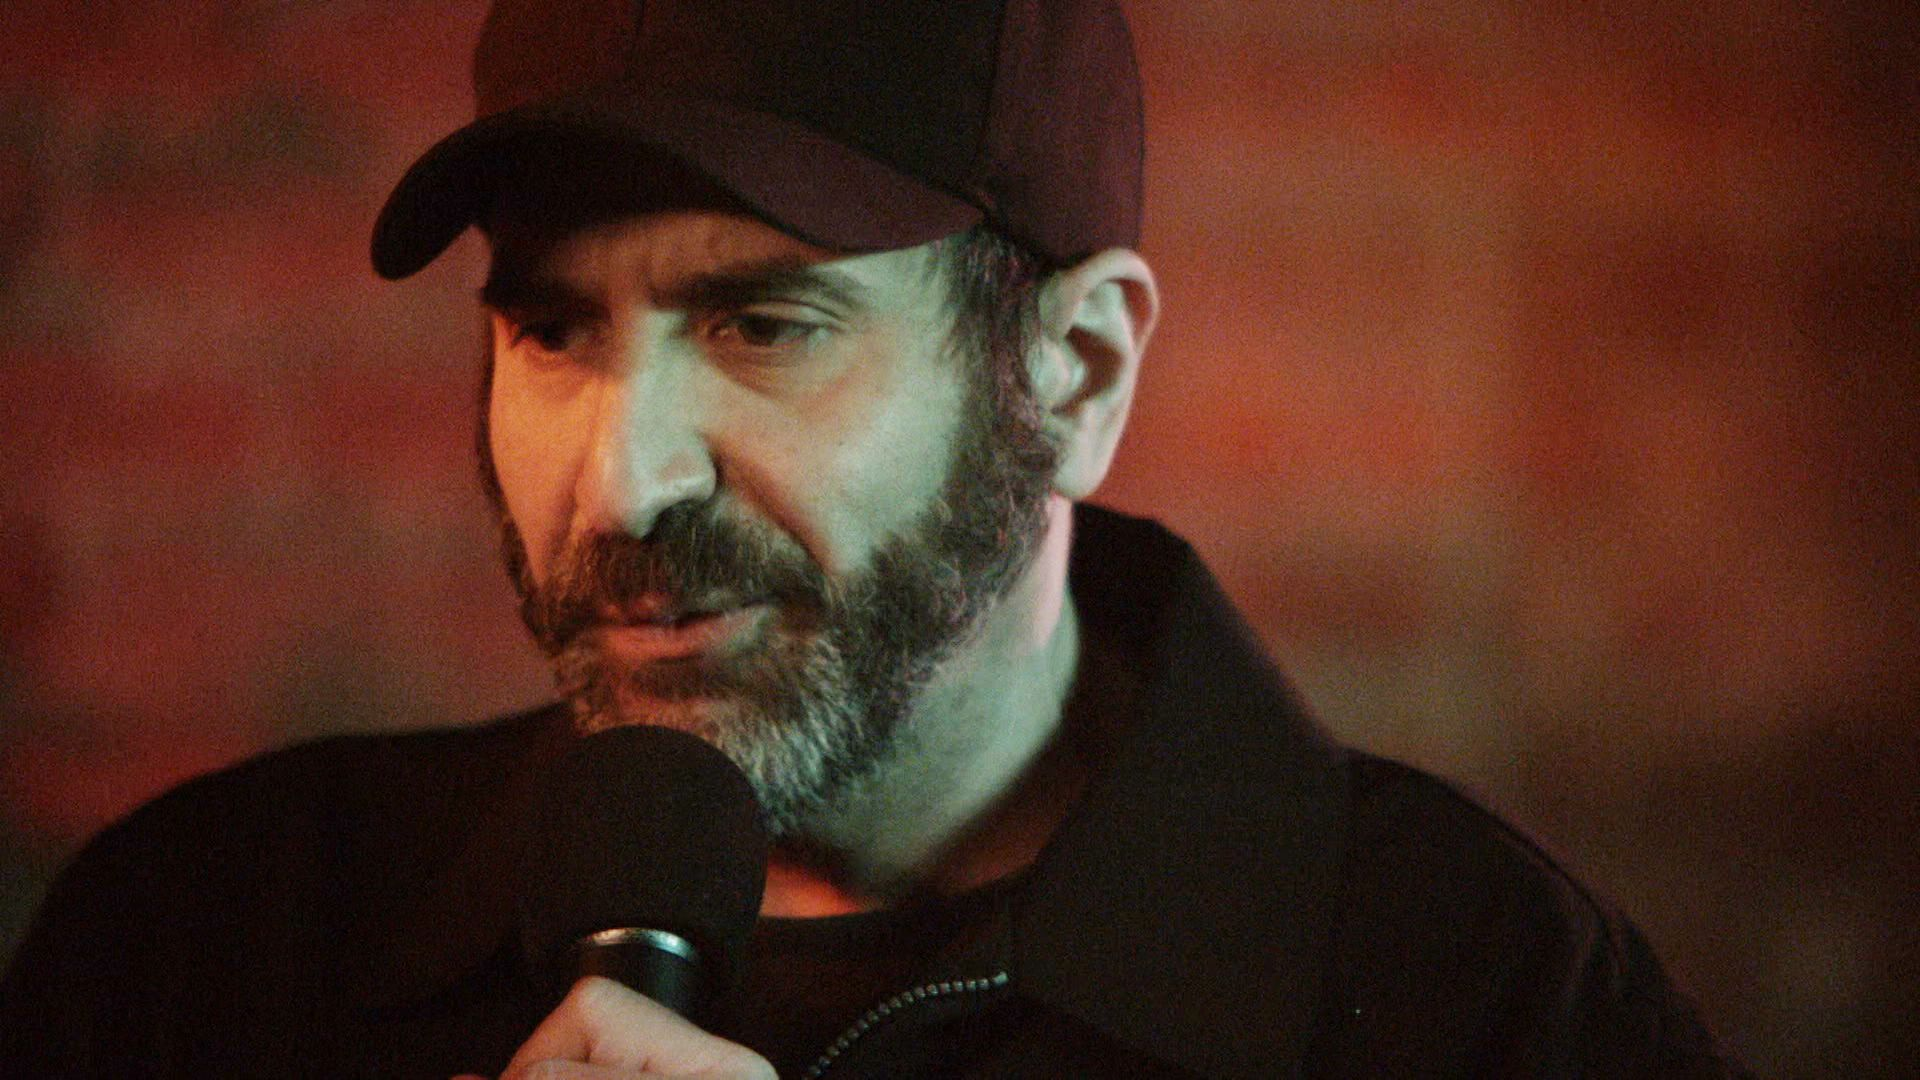 For the Dave attell midget your